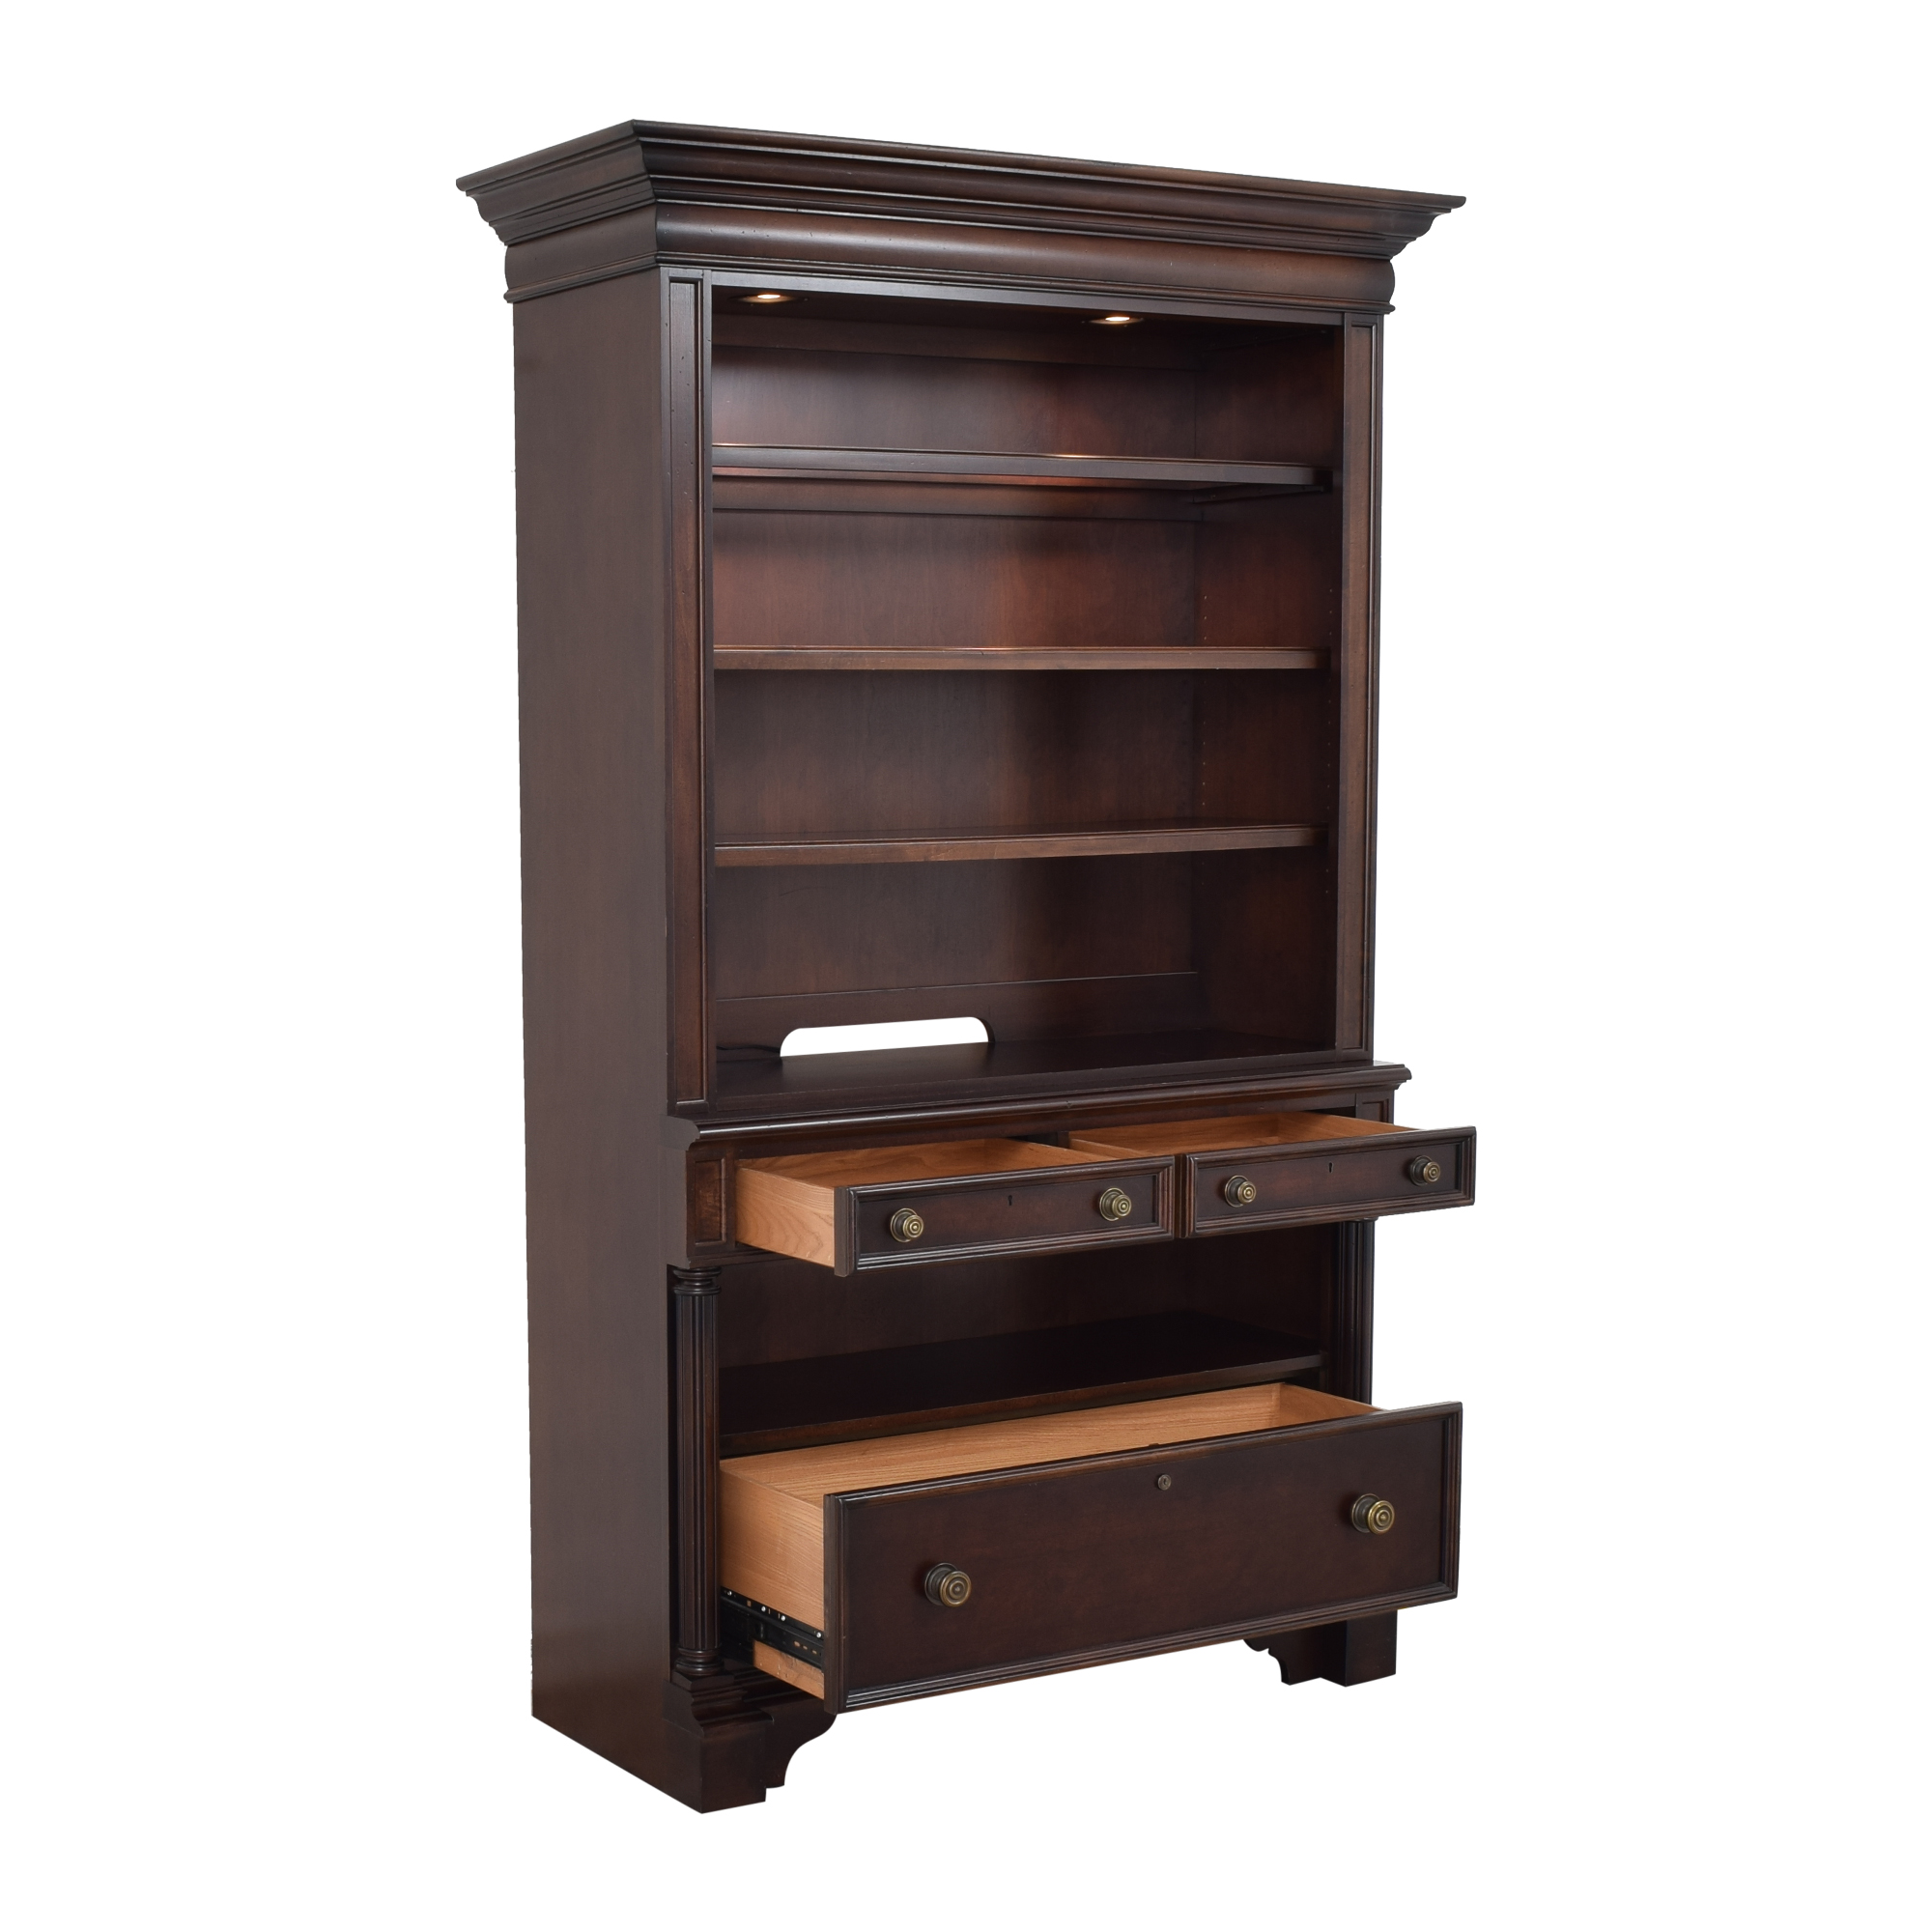 Stanley Furniture Stanley Furniture Bookcase Cabinet used